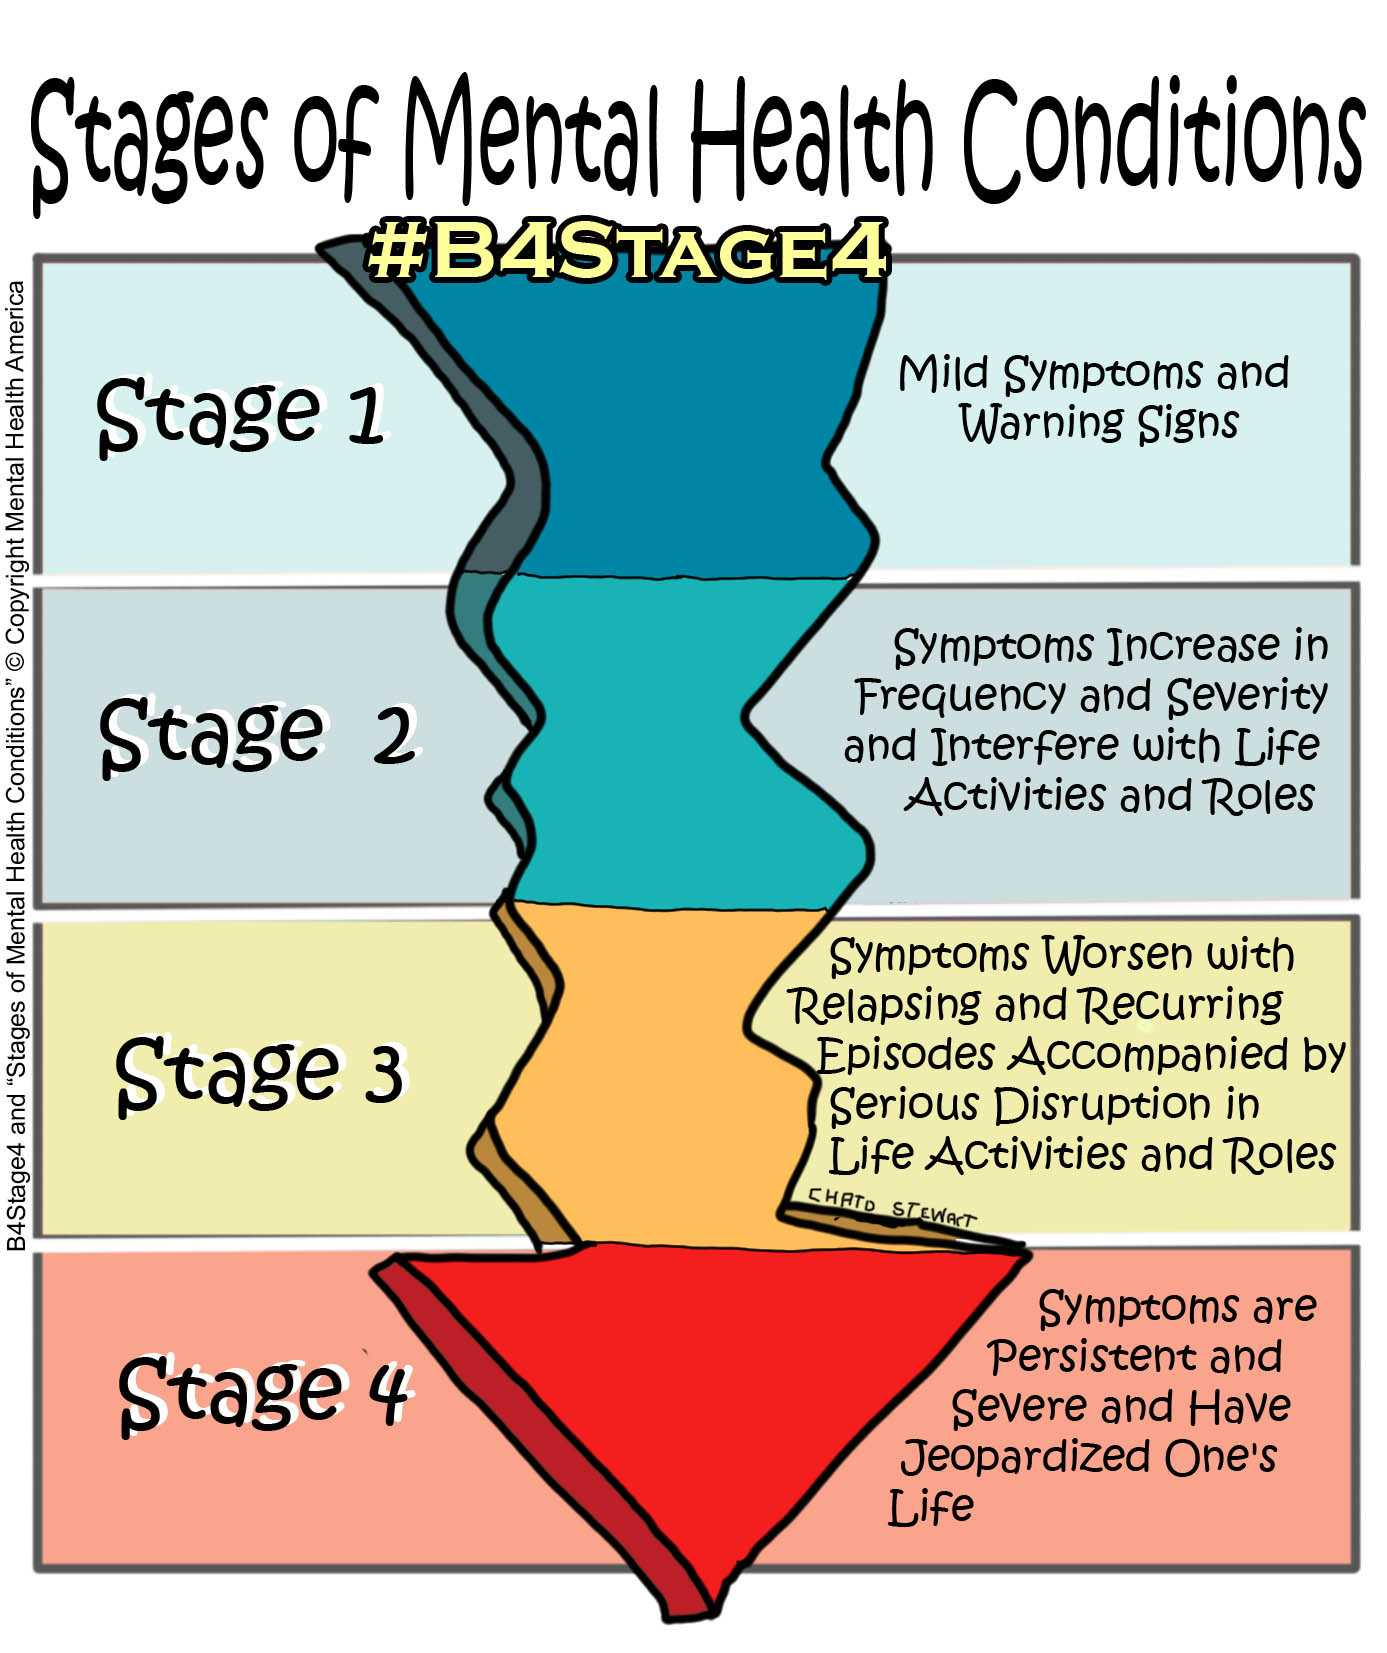 Sad Quotes About Depression: Stages Of Mental Health Conditions